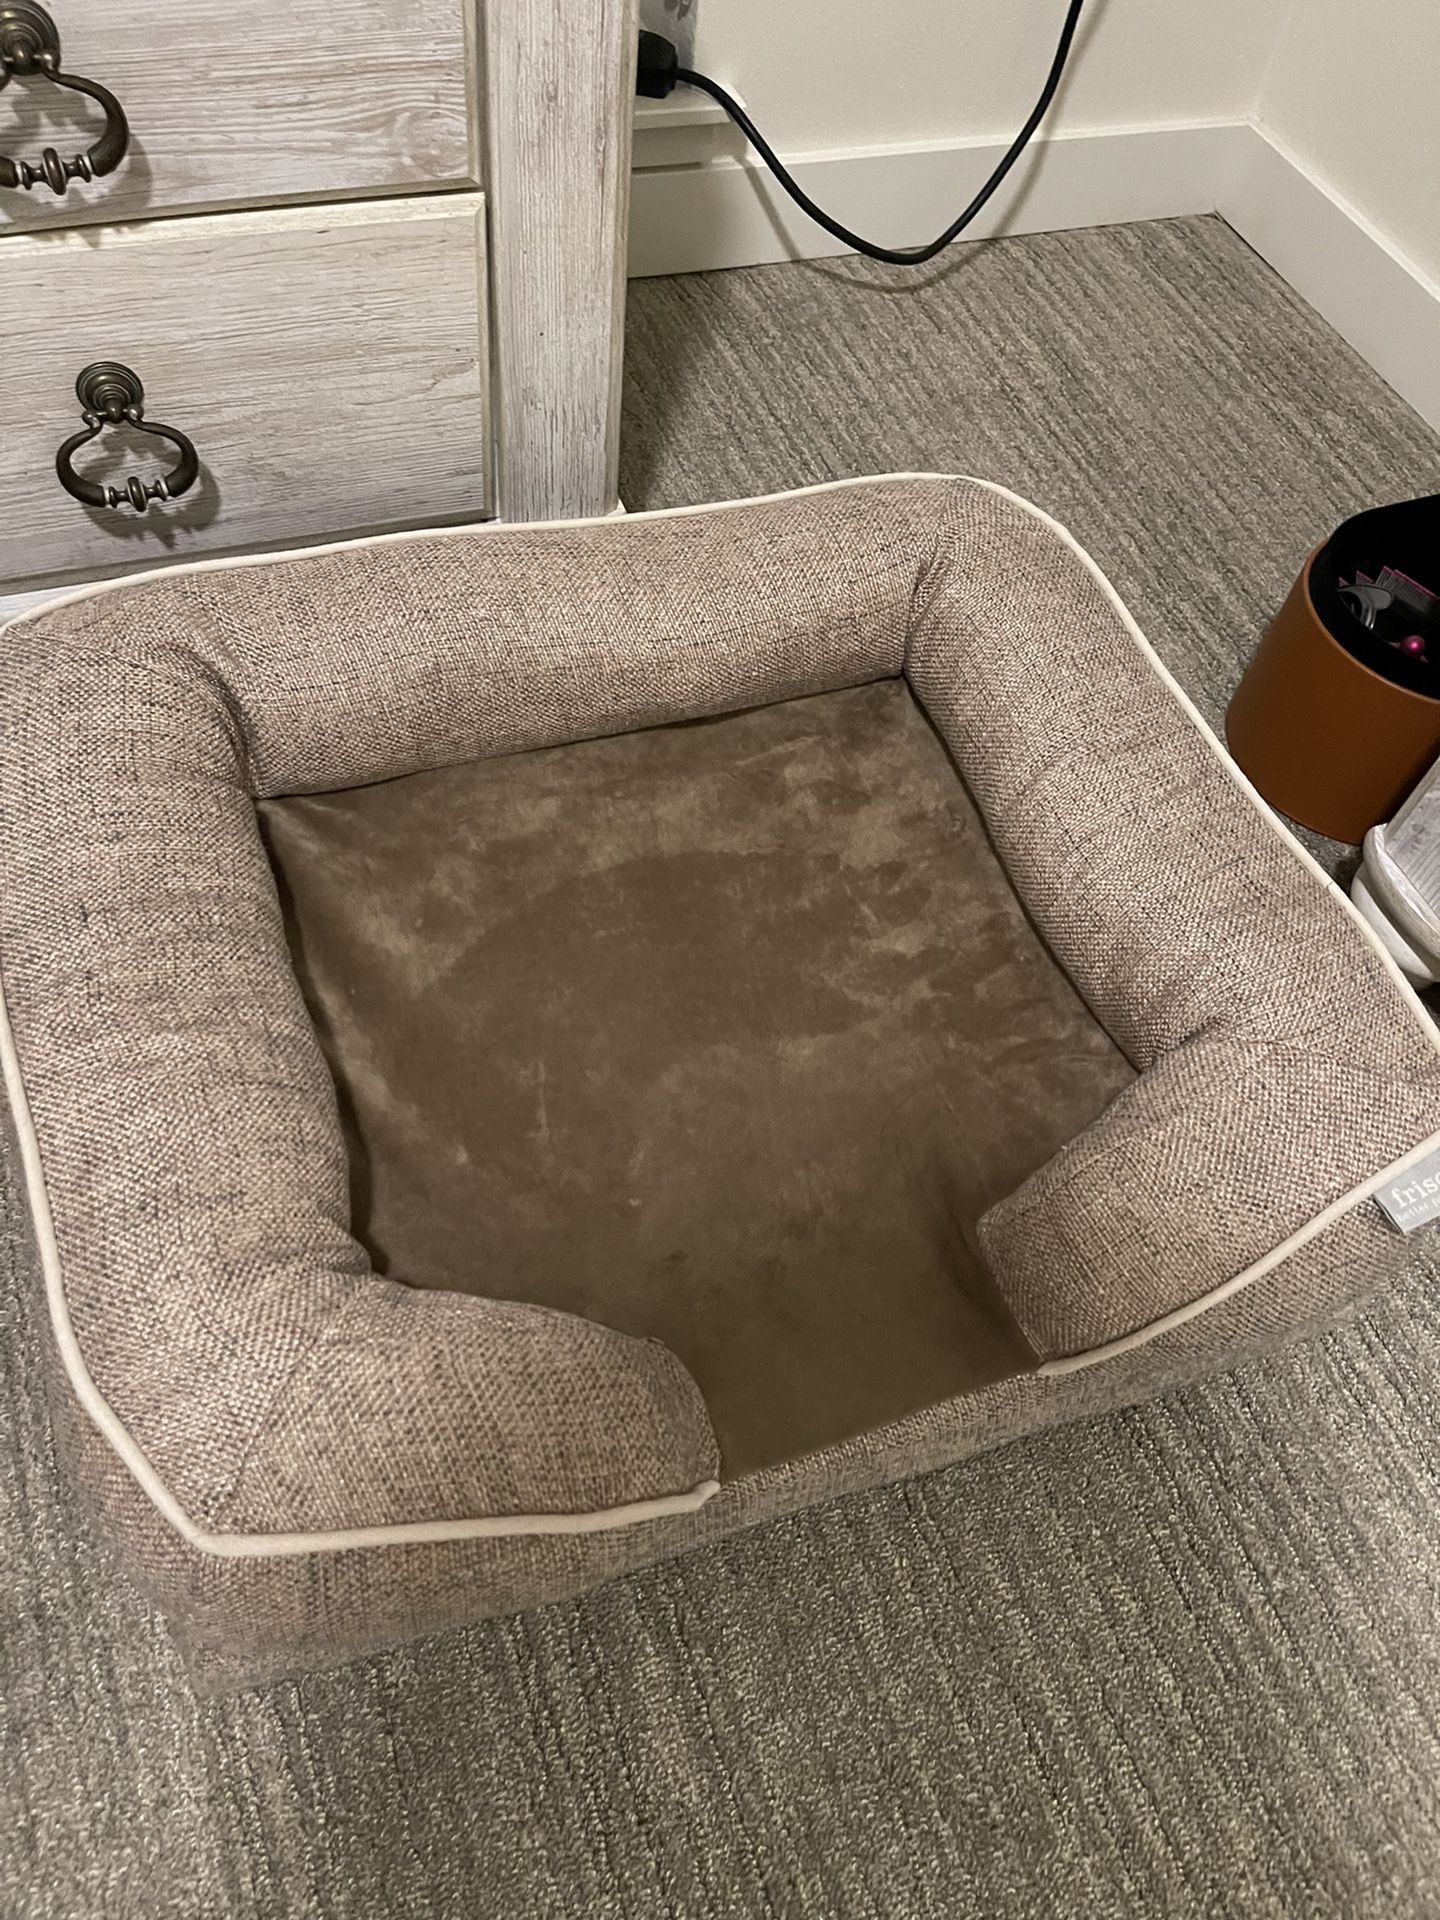 Orthopedic Dog Bed For X Small And Small Dogs